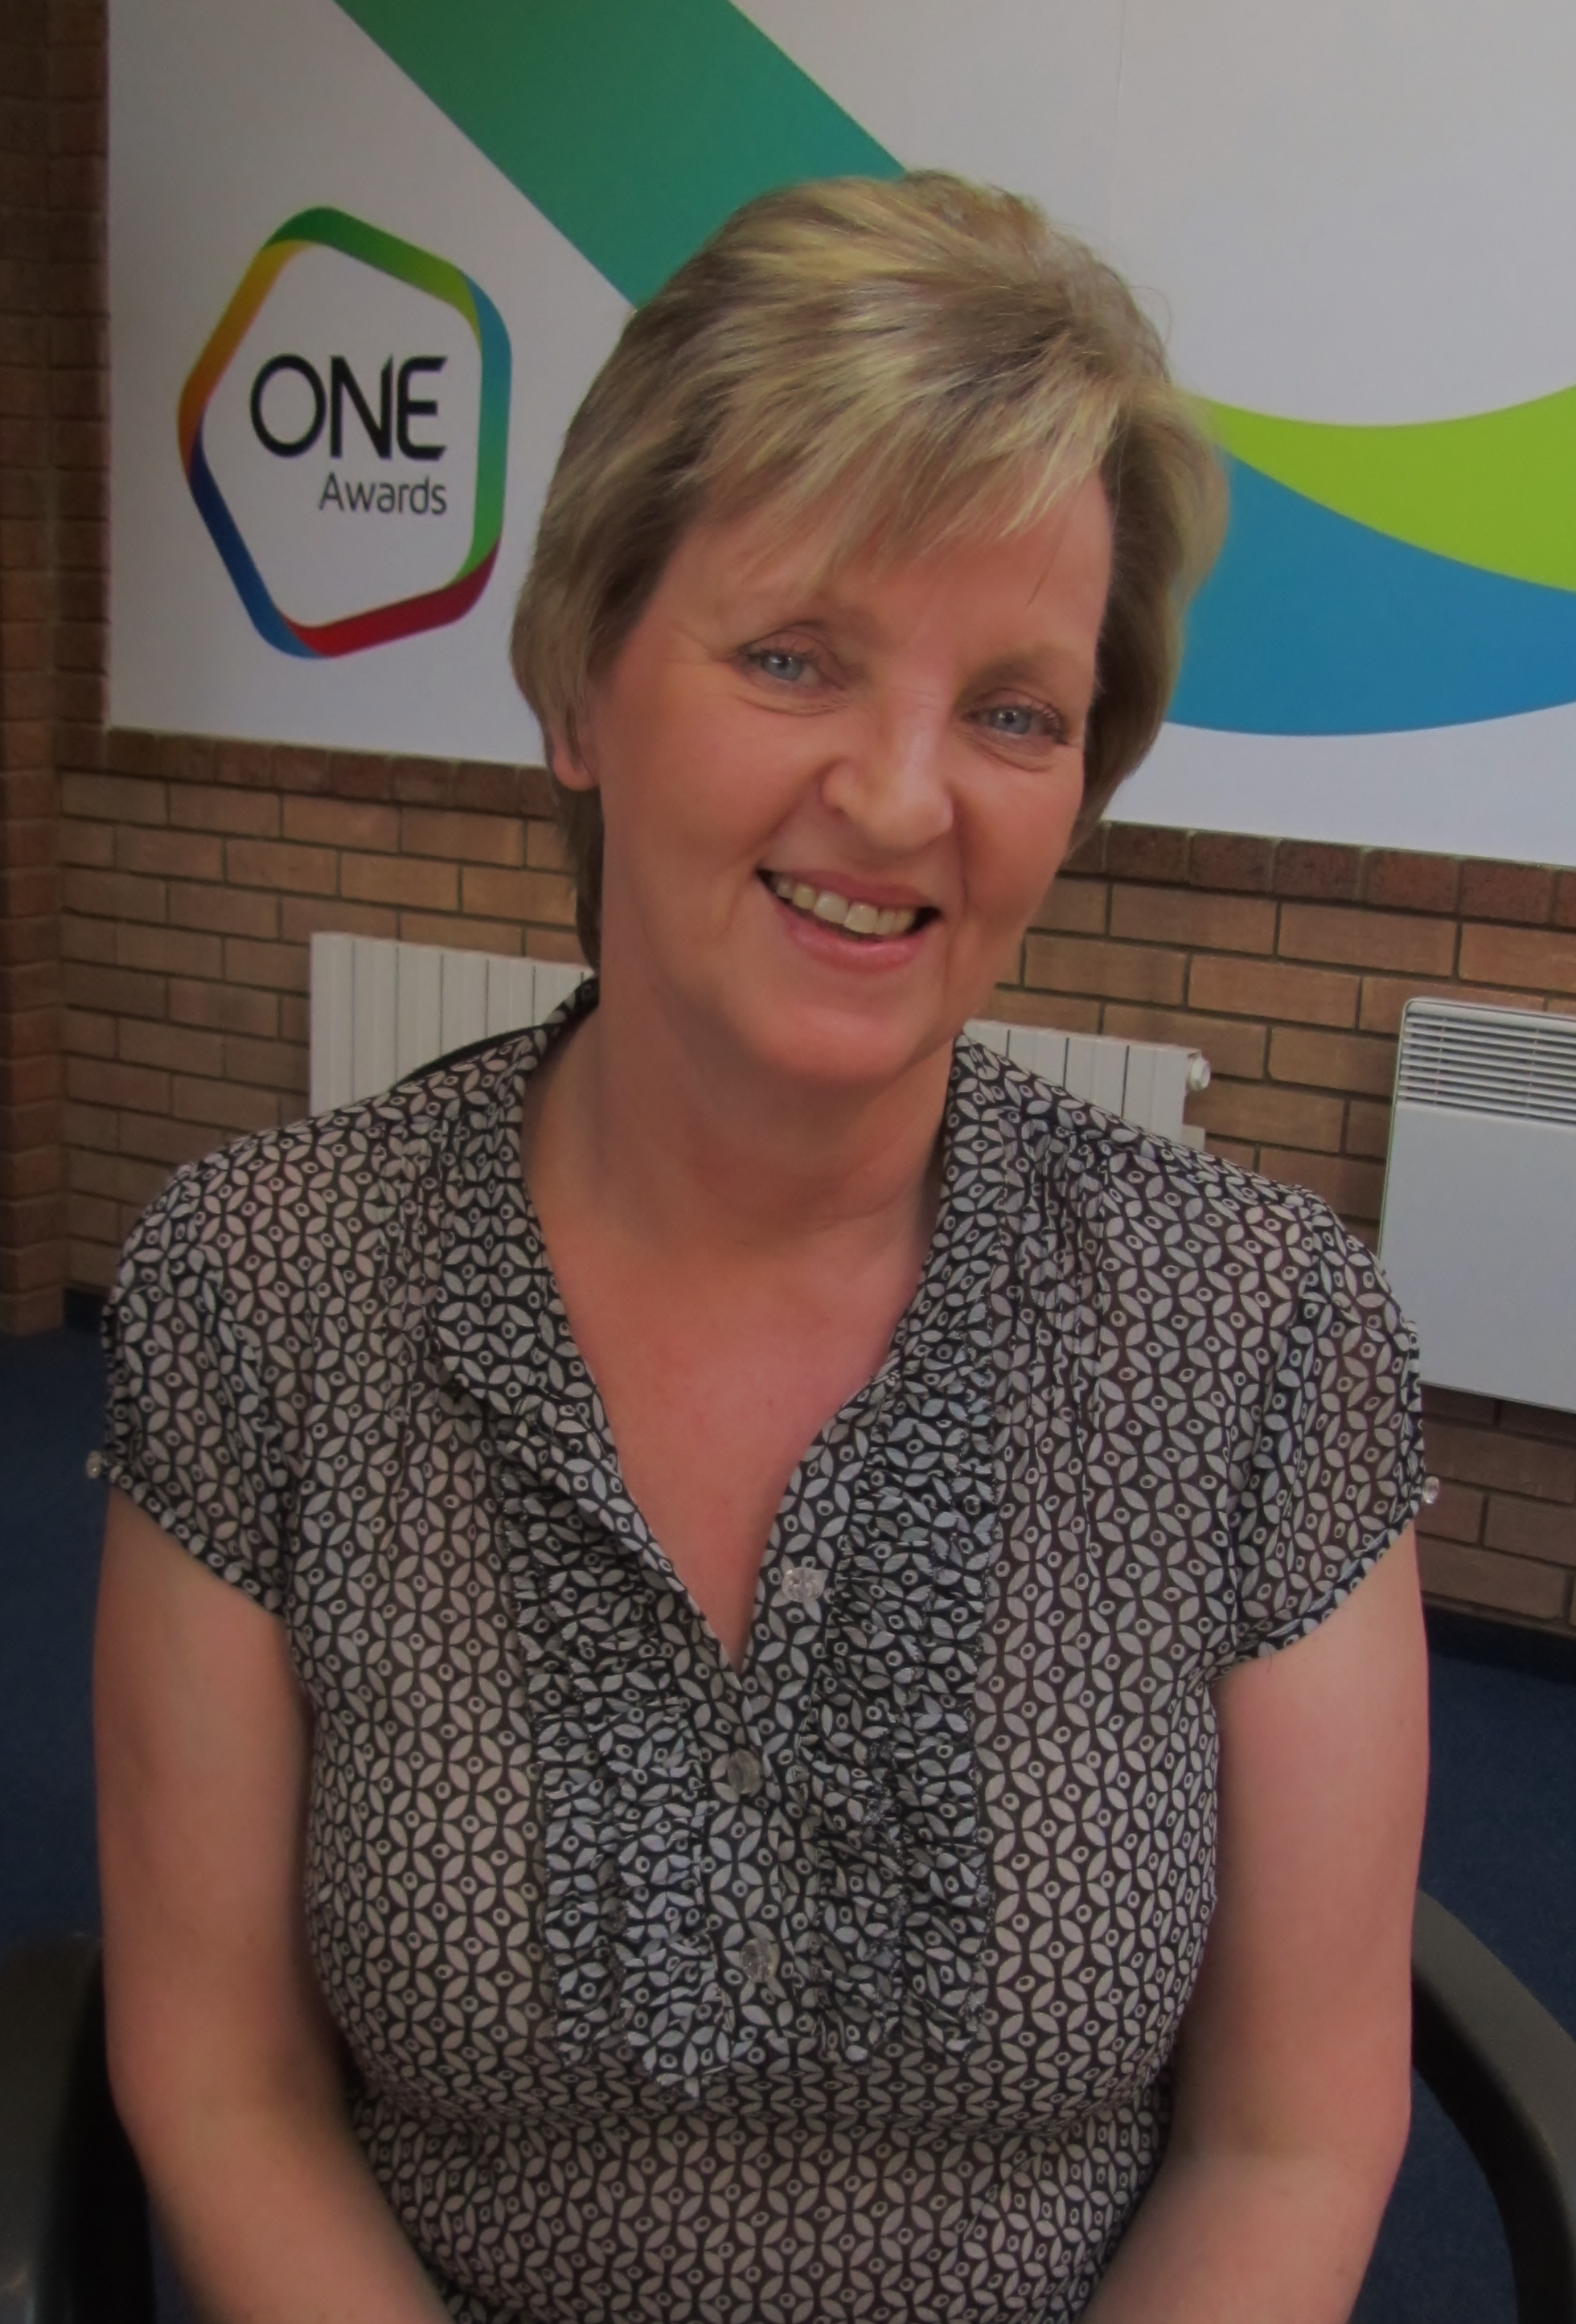 Tracey Williams, Receptionist at One Awards